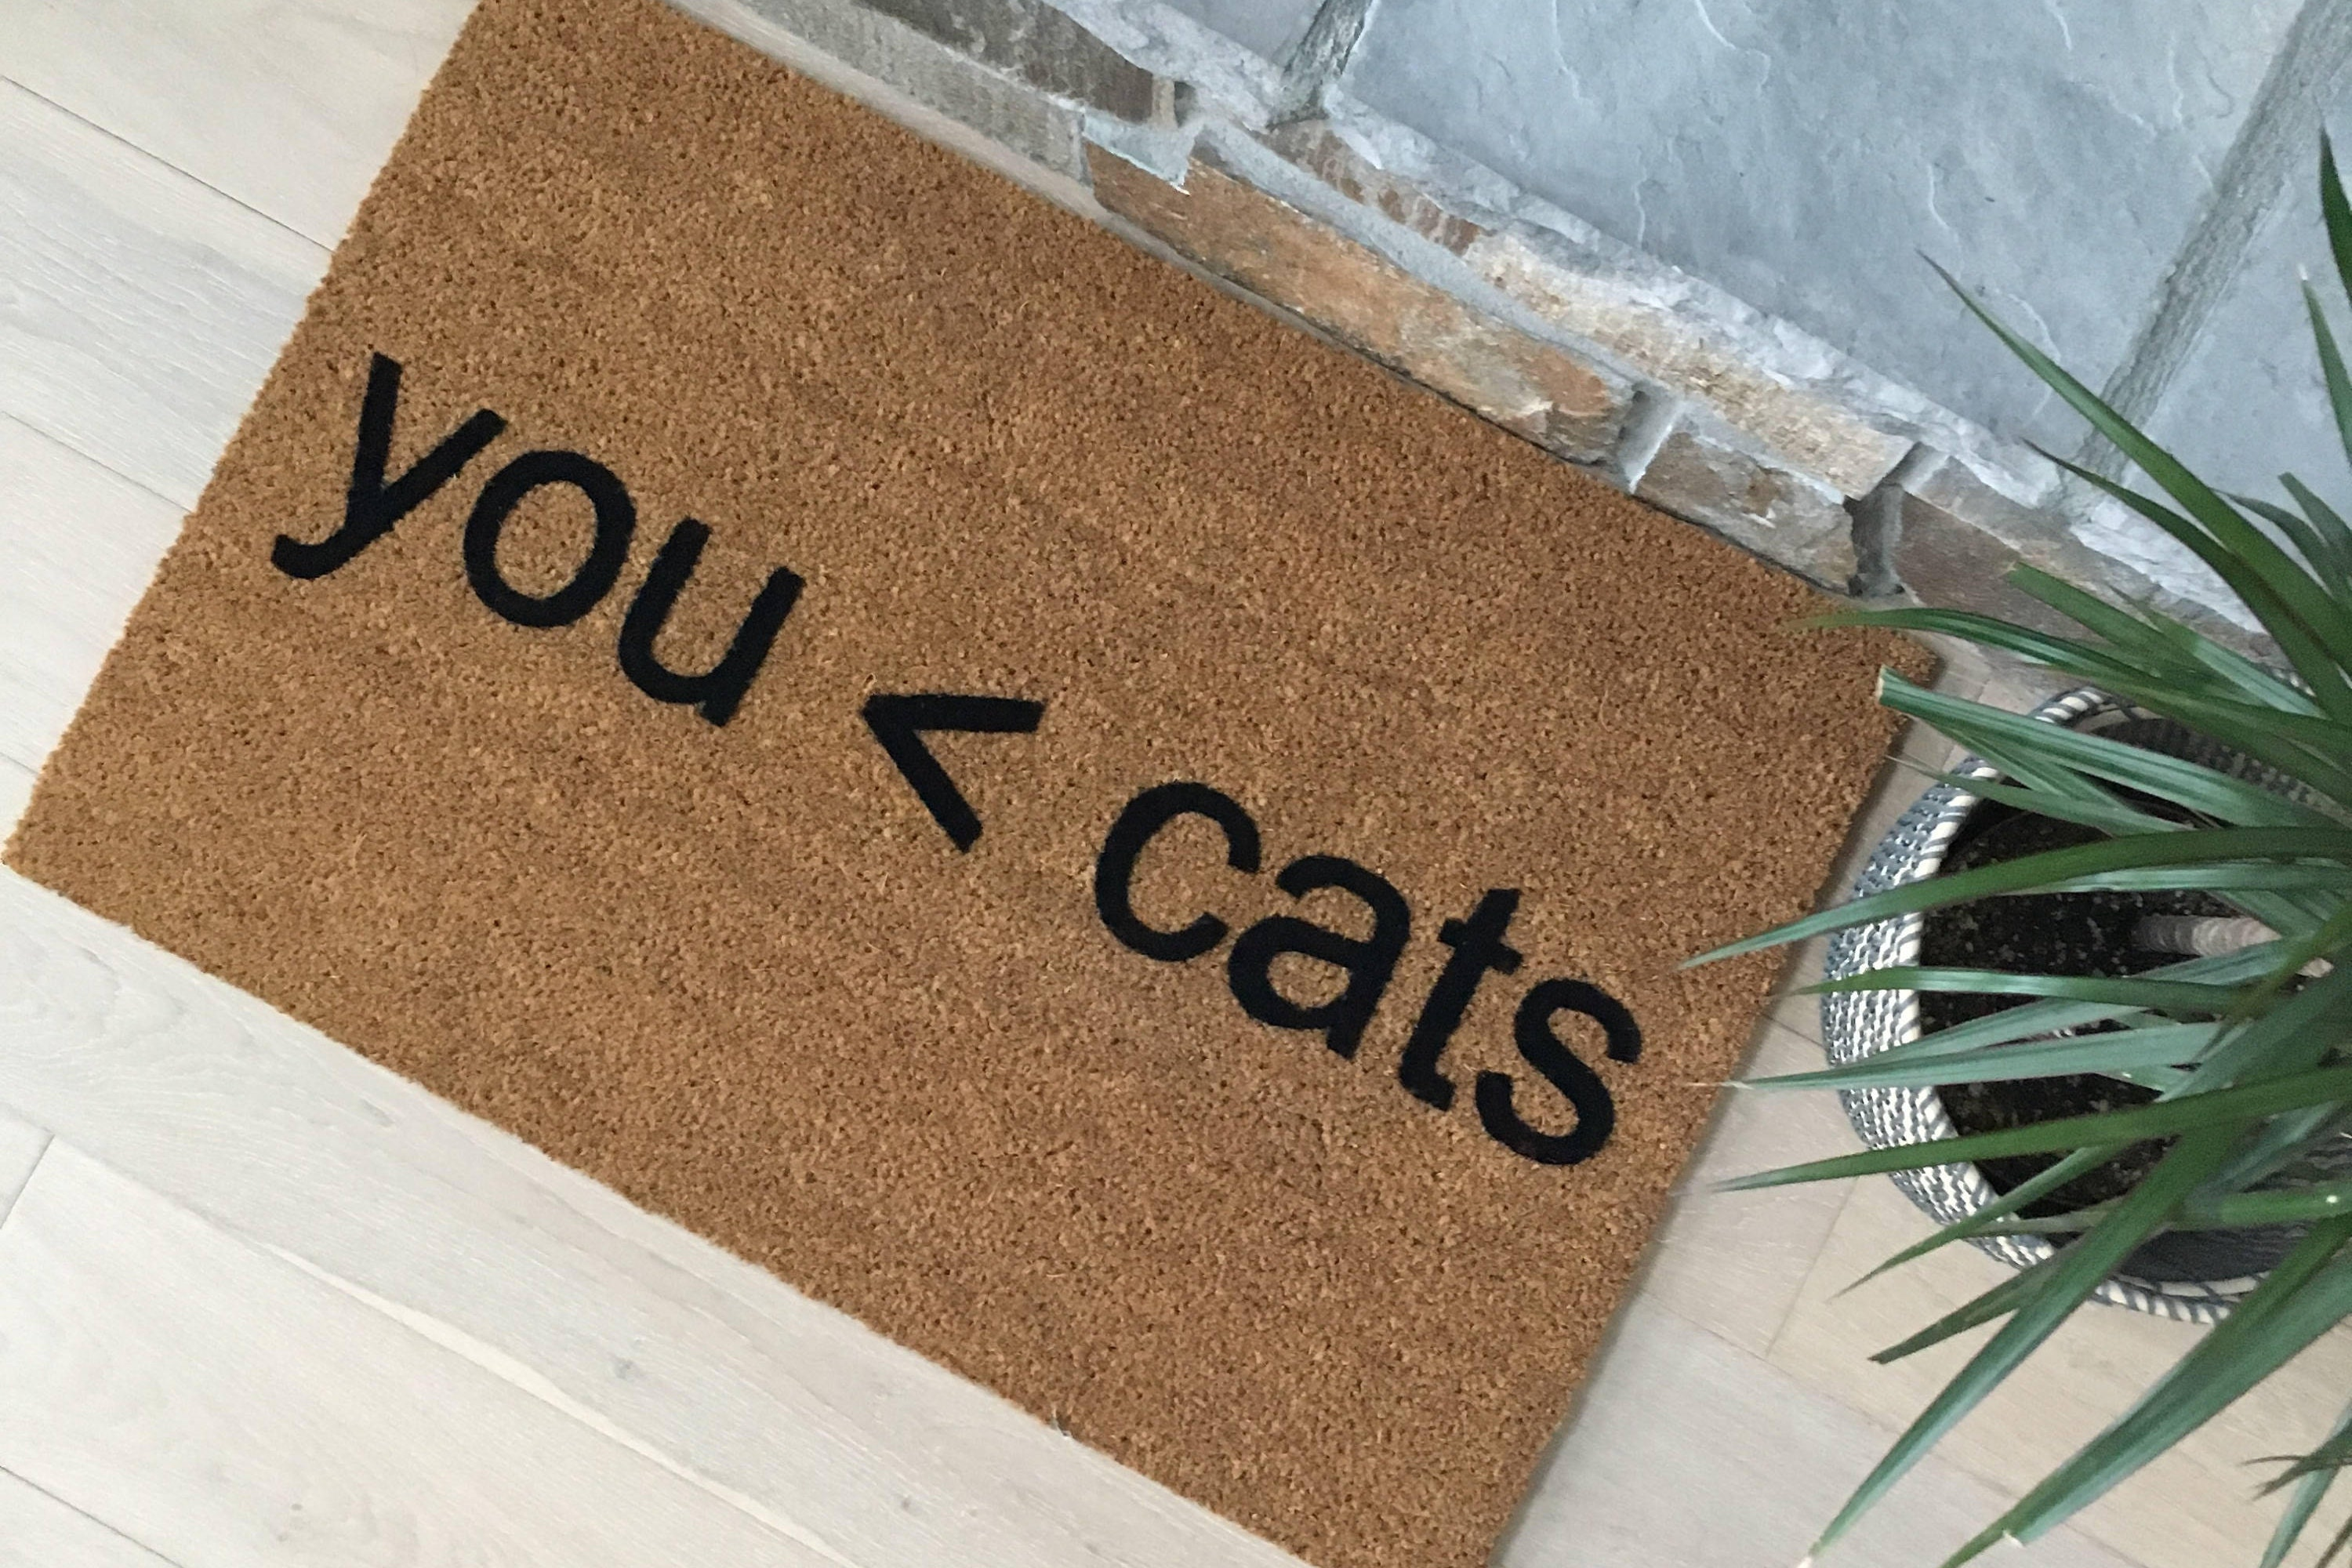 doormat cat by mats paws mat uk visitors kitchen welcome be co the approved home rug amazon dp must kitty